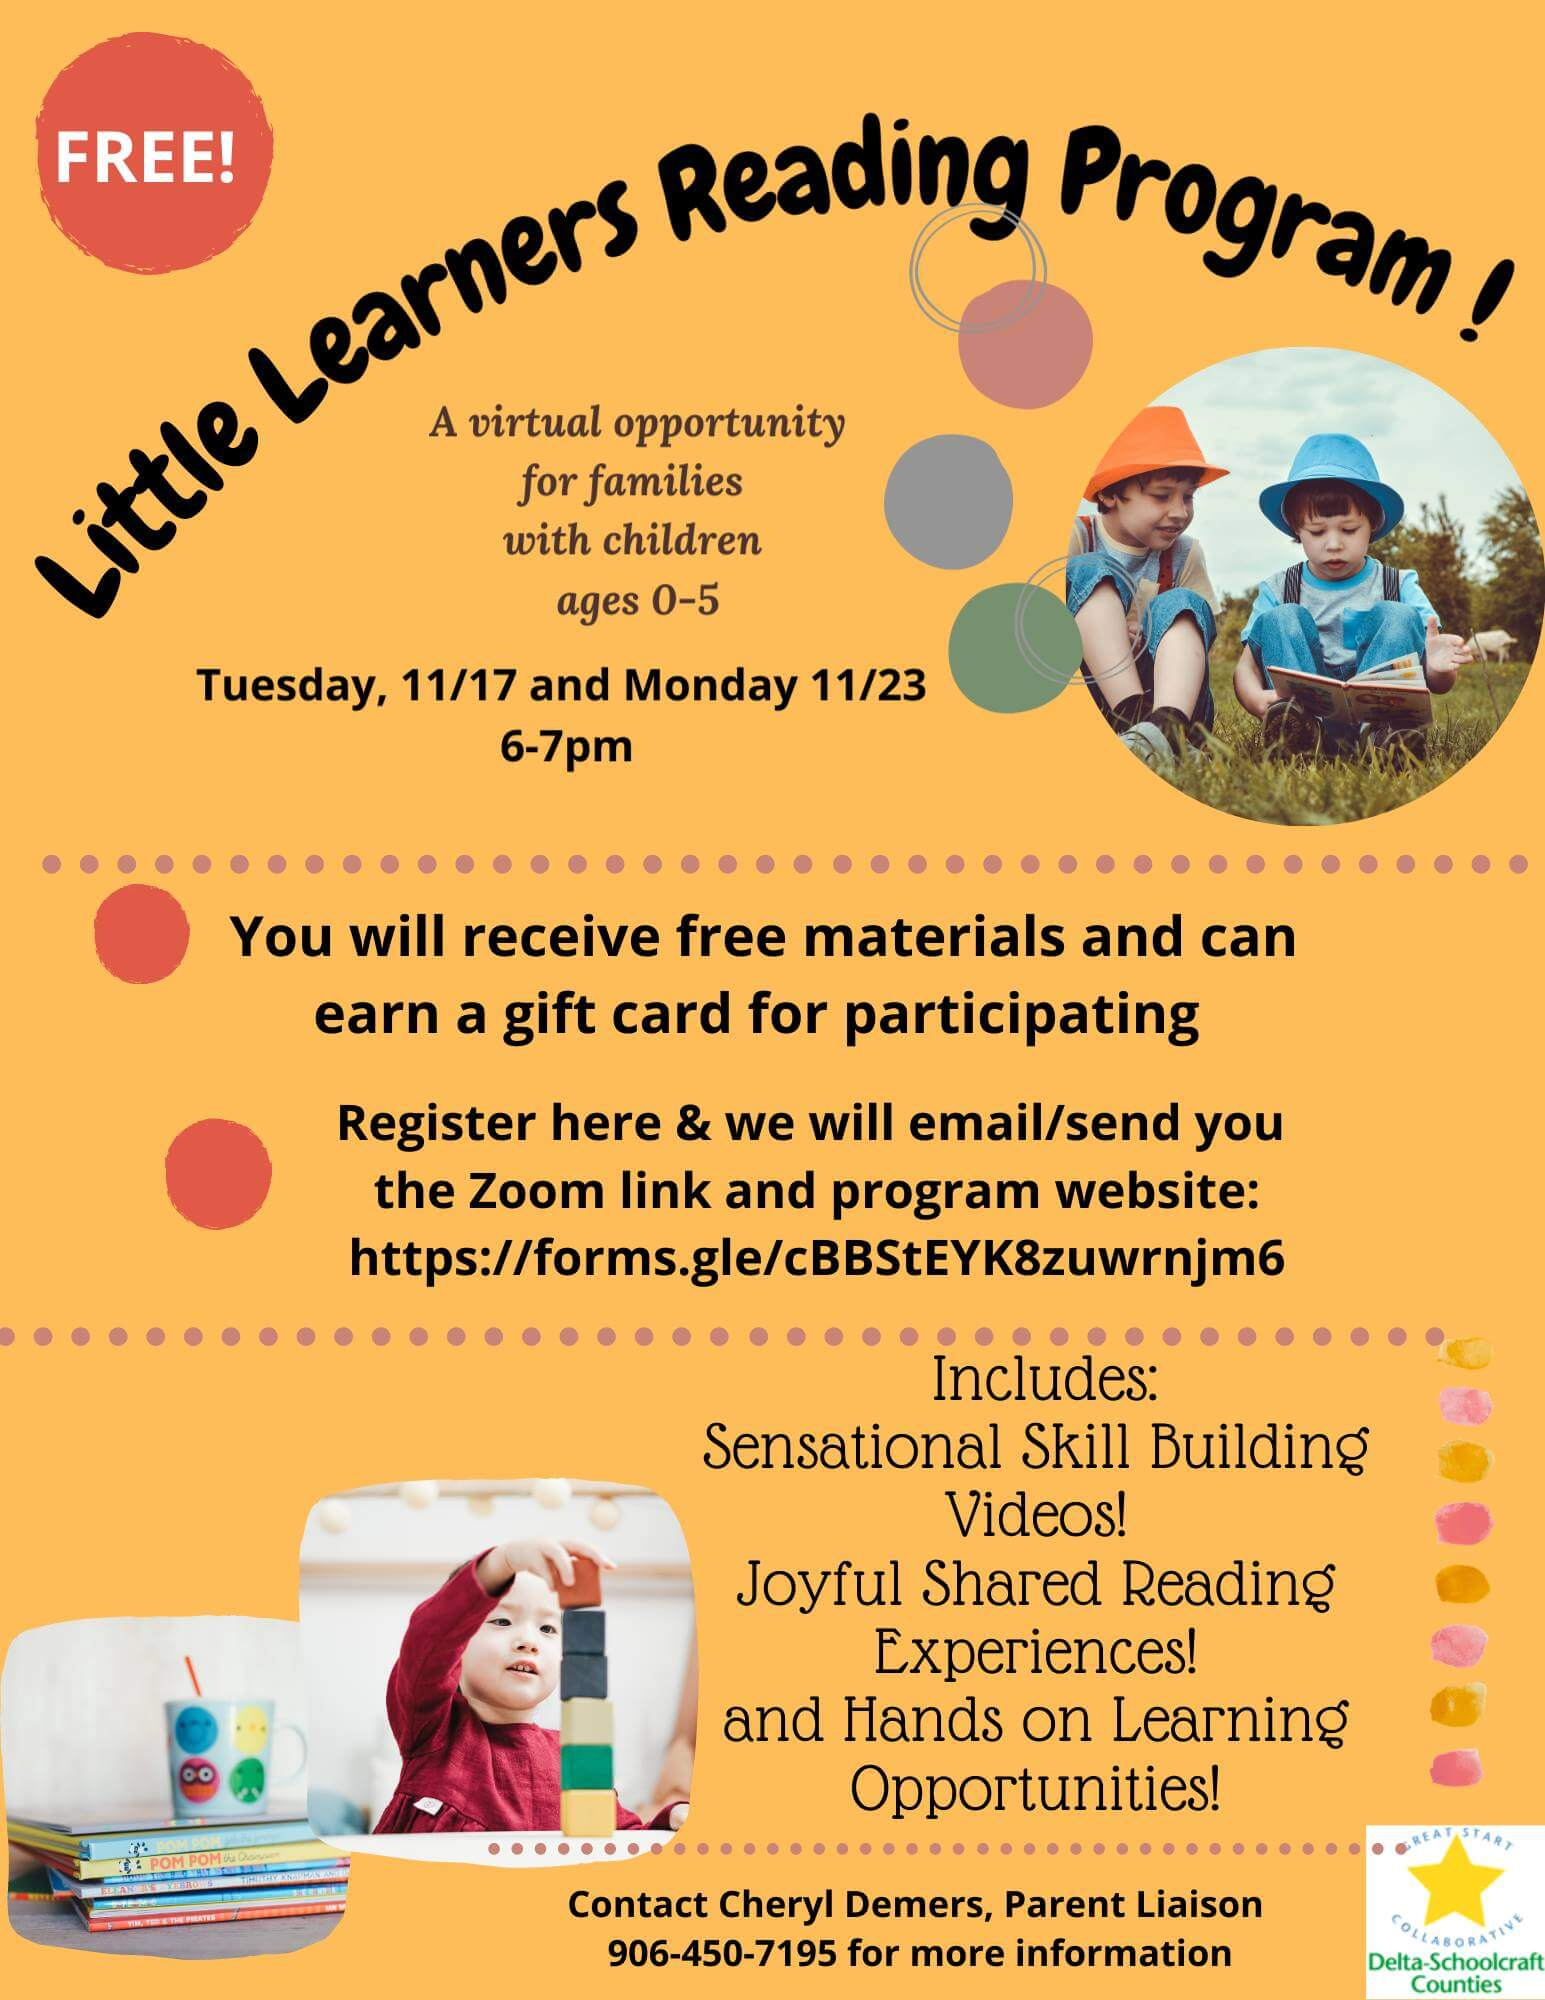 Free! Little Learners Reading Program! A virtual opportunity for families with children ages 0-5, Tusday, 11/17 and Monday 11/23 6-7 pm. You will receive free materials and can earn a gift card for participating. Register here and we will email/send you the Zoom link and program website: https://forms/gle/cBBStEYK8zuwrnjm6. Includes: SEnsational Skill Building videos! Joyful shared reading experiences! and Hands on Learning opportunites! Contact Cheryl Demers, Parent Liasison, 906-450-7195 for more information.